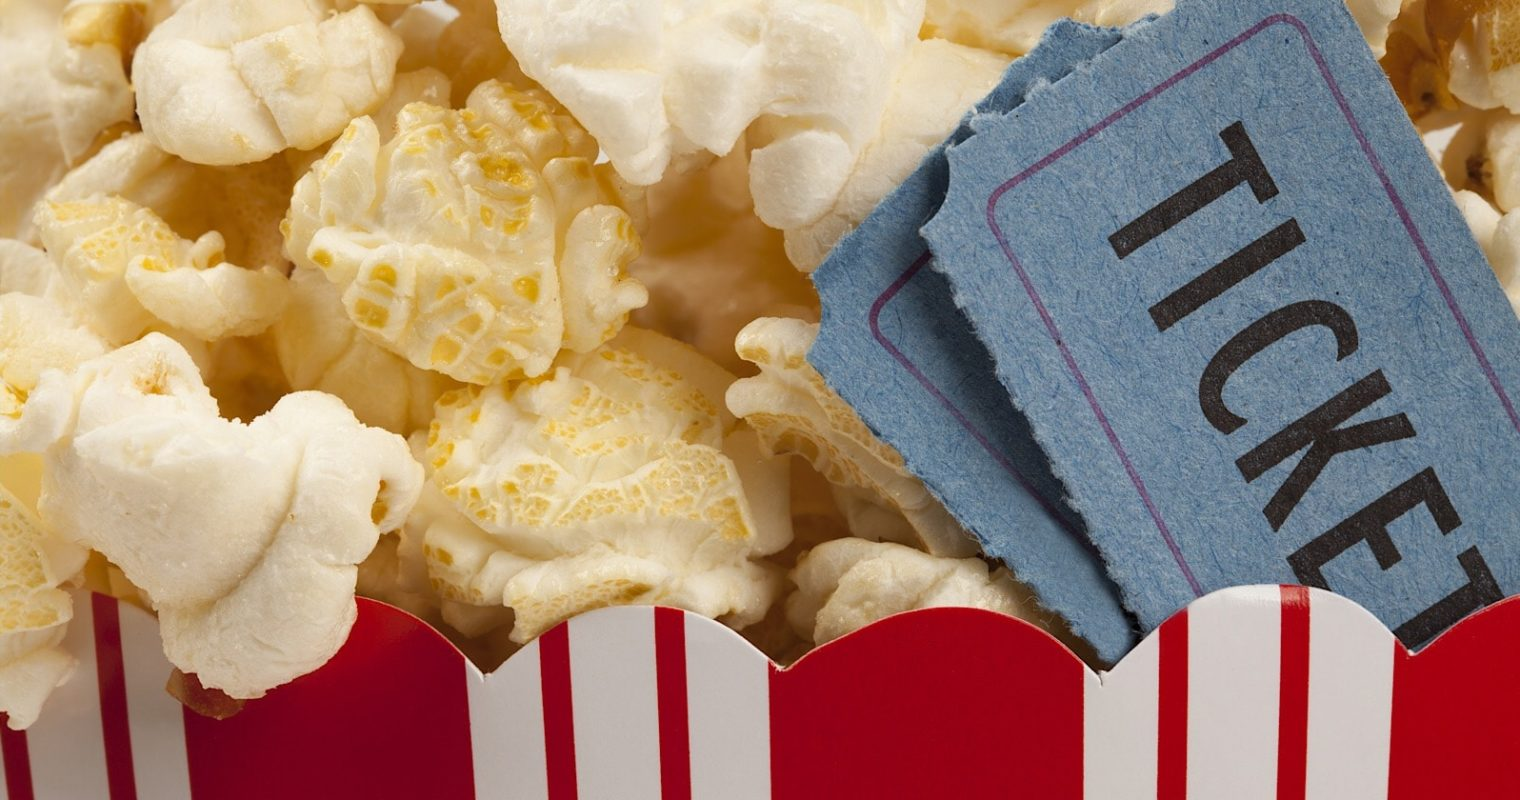 Google Enhances Movie Search With Ratings, Showtimes, and More